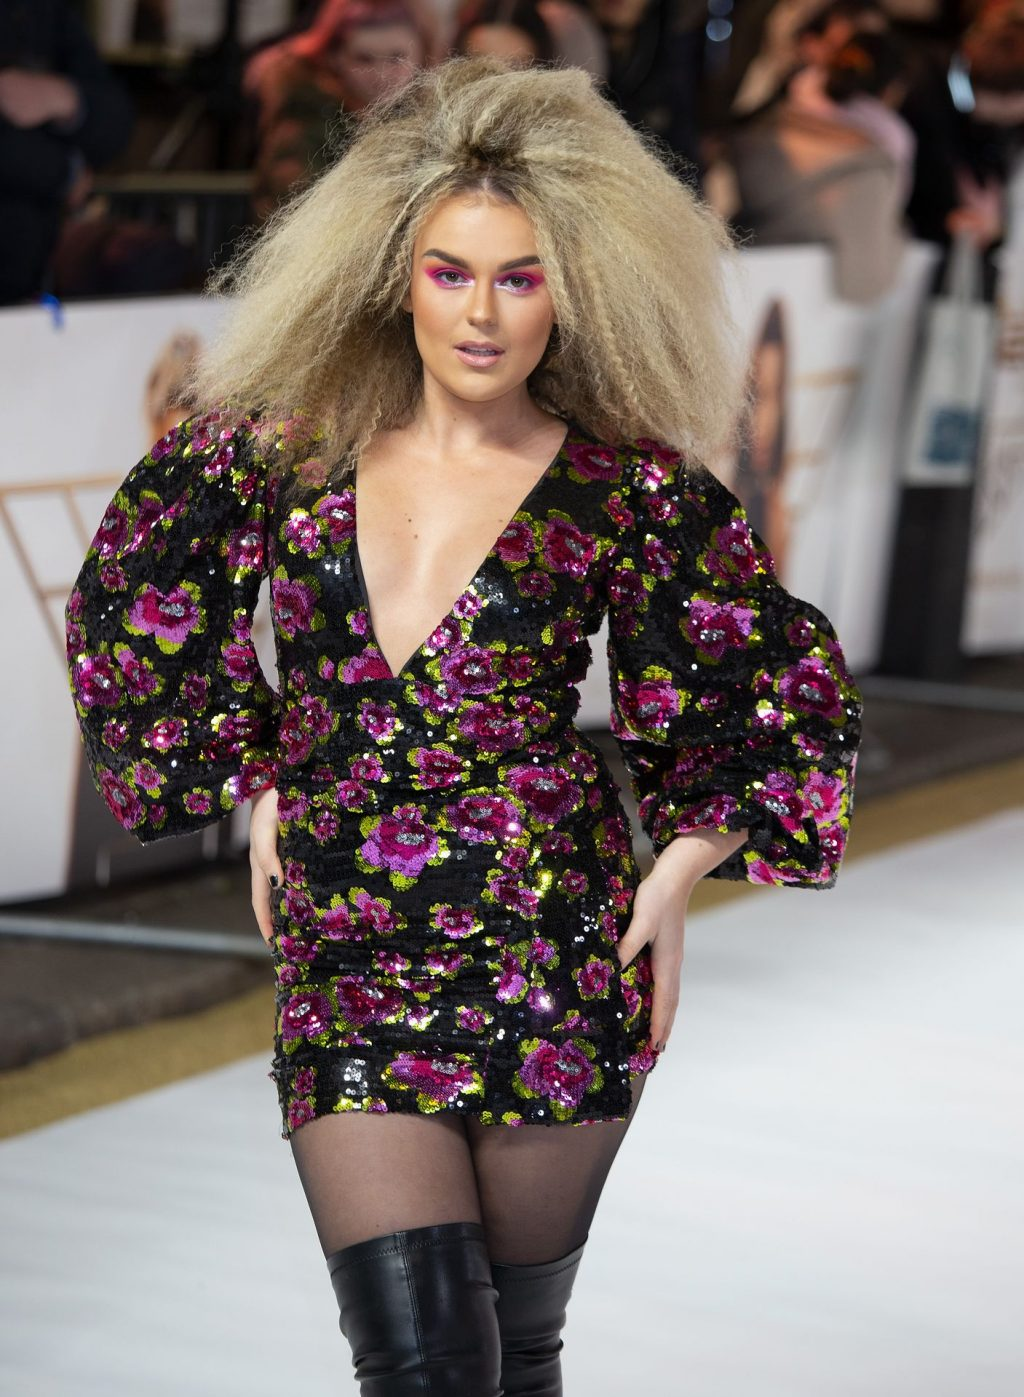 Tallia Storm Sexy (55 Photos)